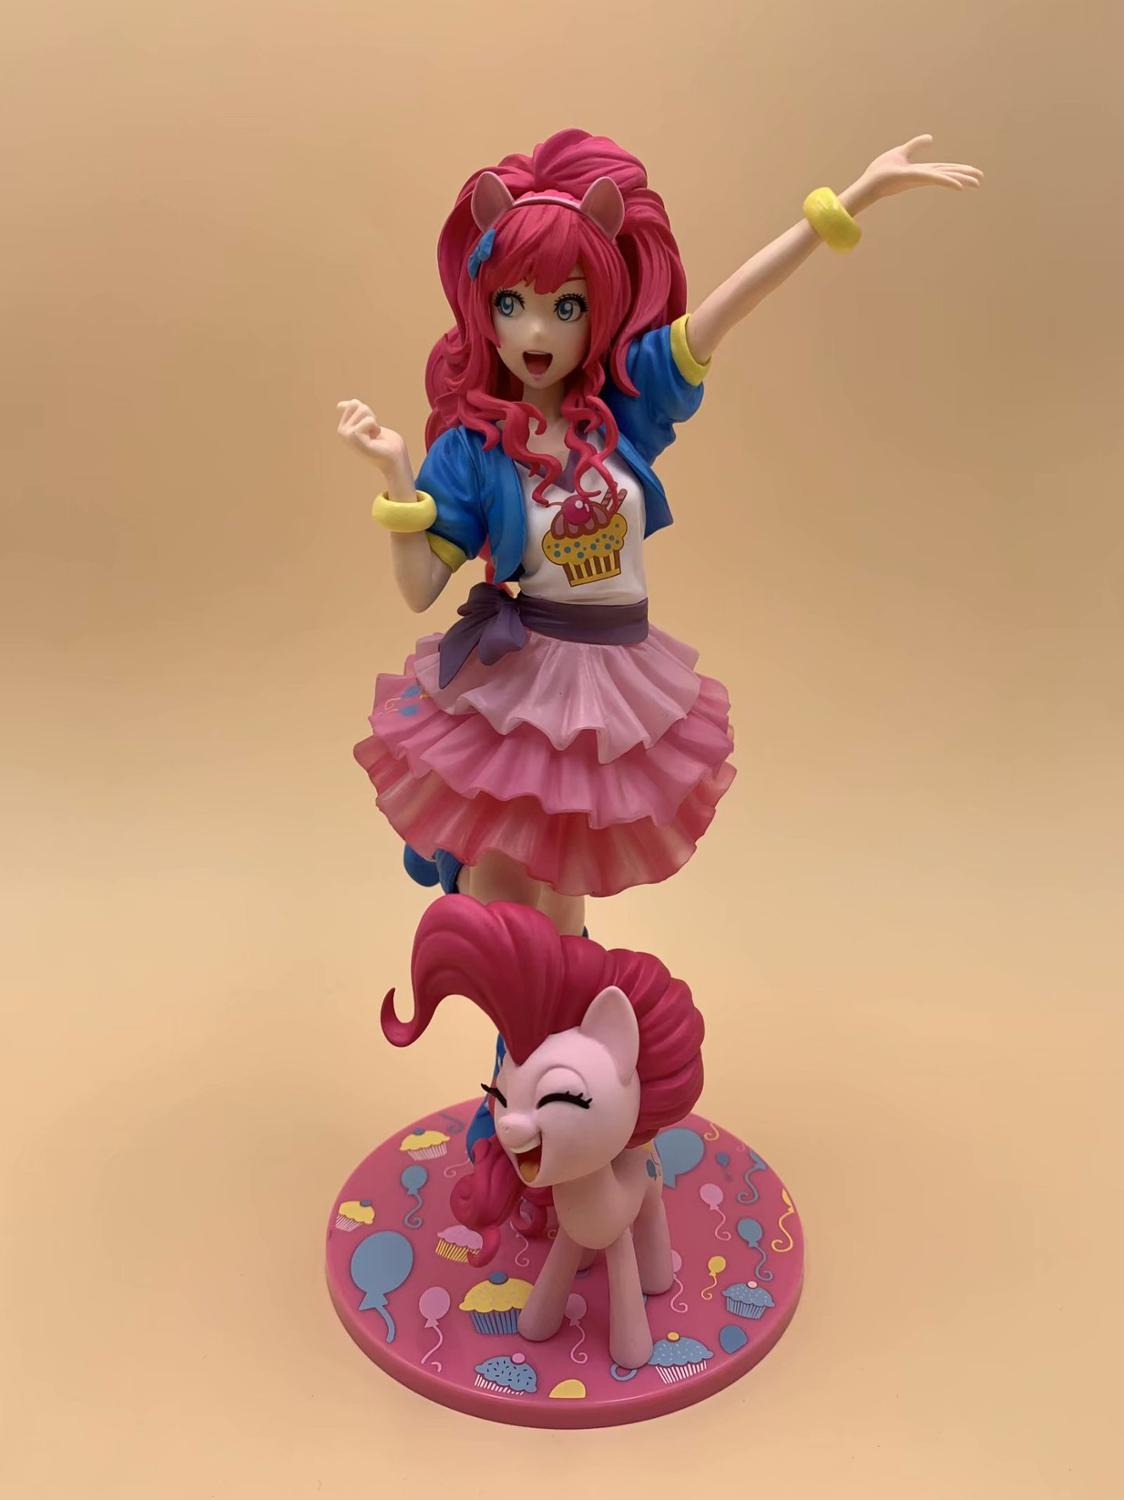 MEW Game My Little Pony Bishoujo Pinkie Pie PVC Figure Model Toy Doll  Collection Model Toys Gift For Children Birthday